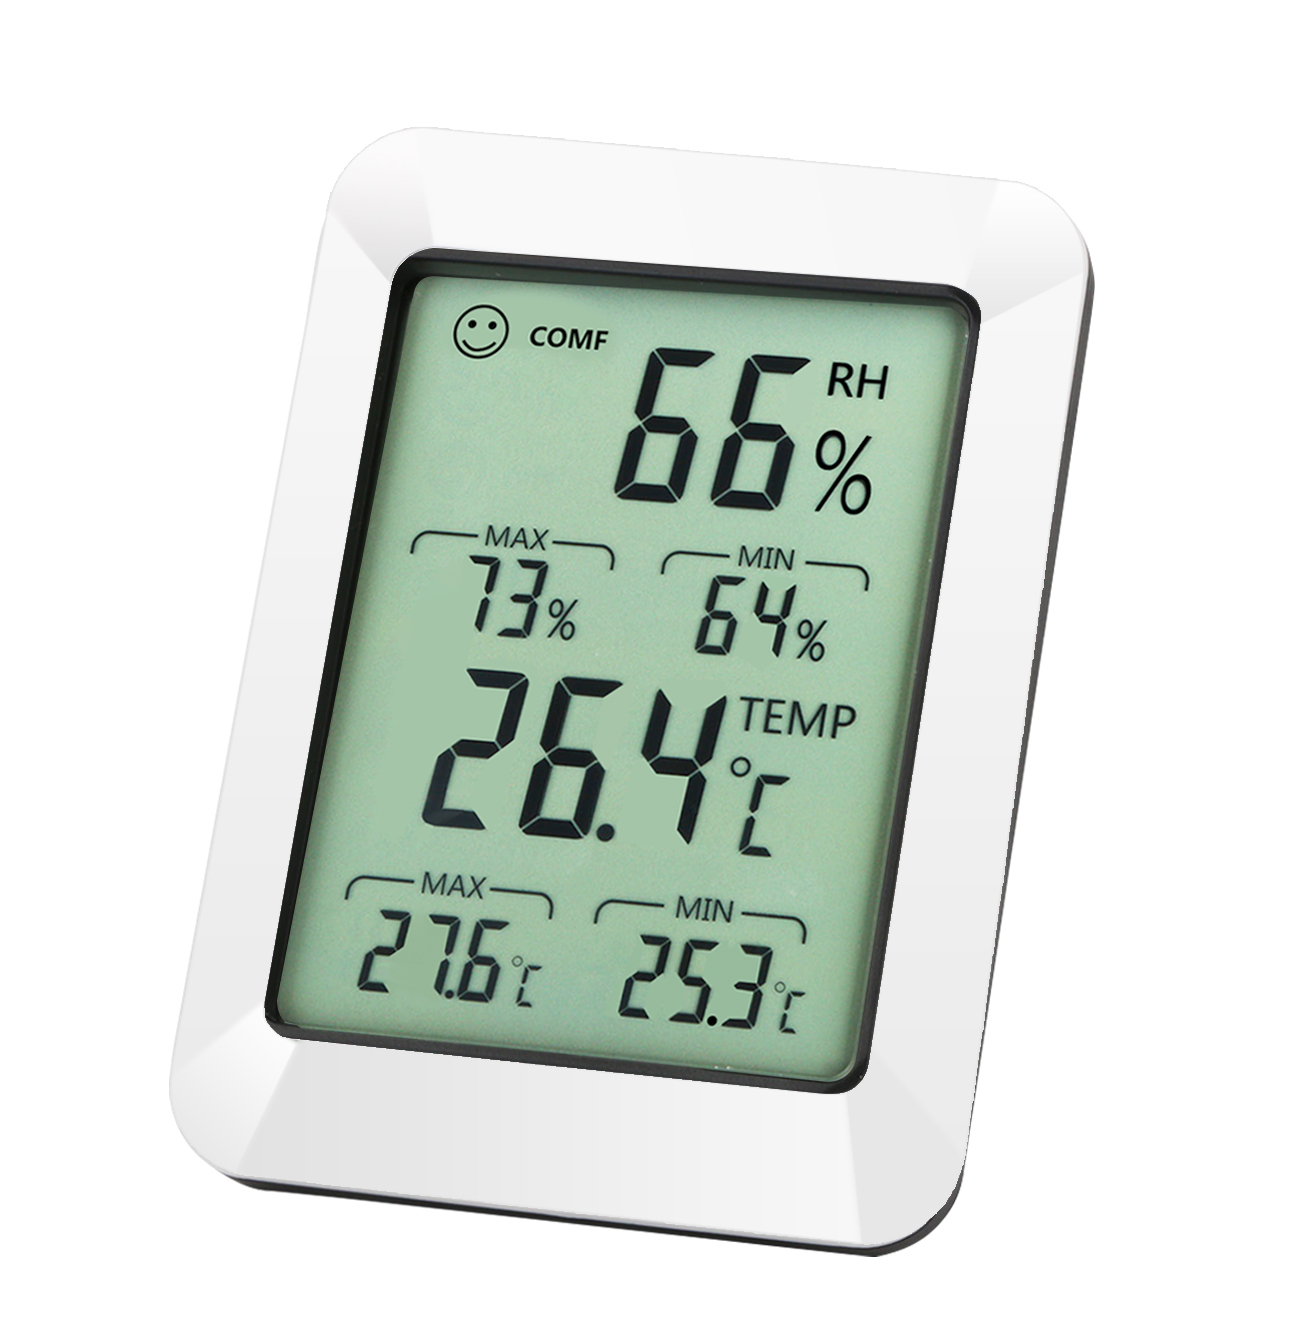 images/wholesale-electronics-2019/DX2-multi-function-room-thermometer-hygrometer-plusbuyer.jpg